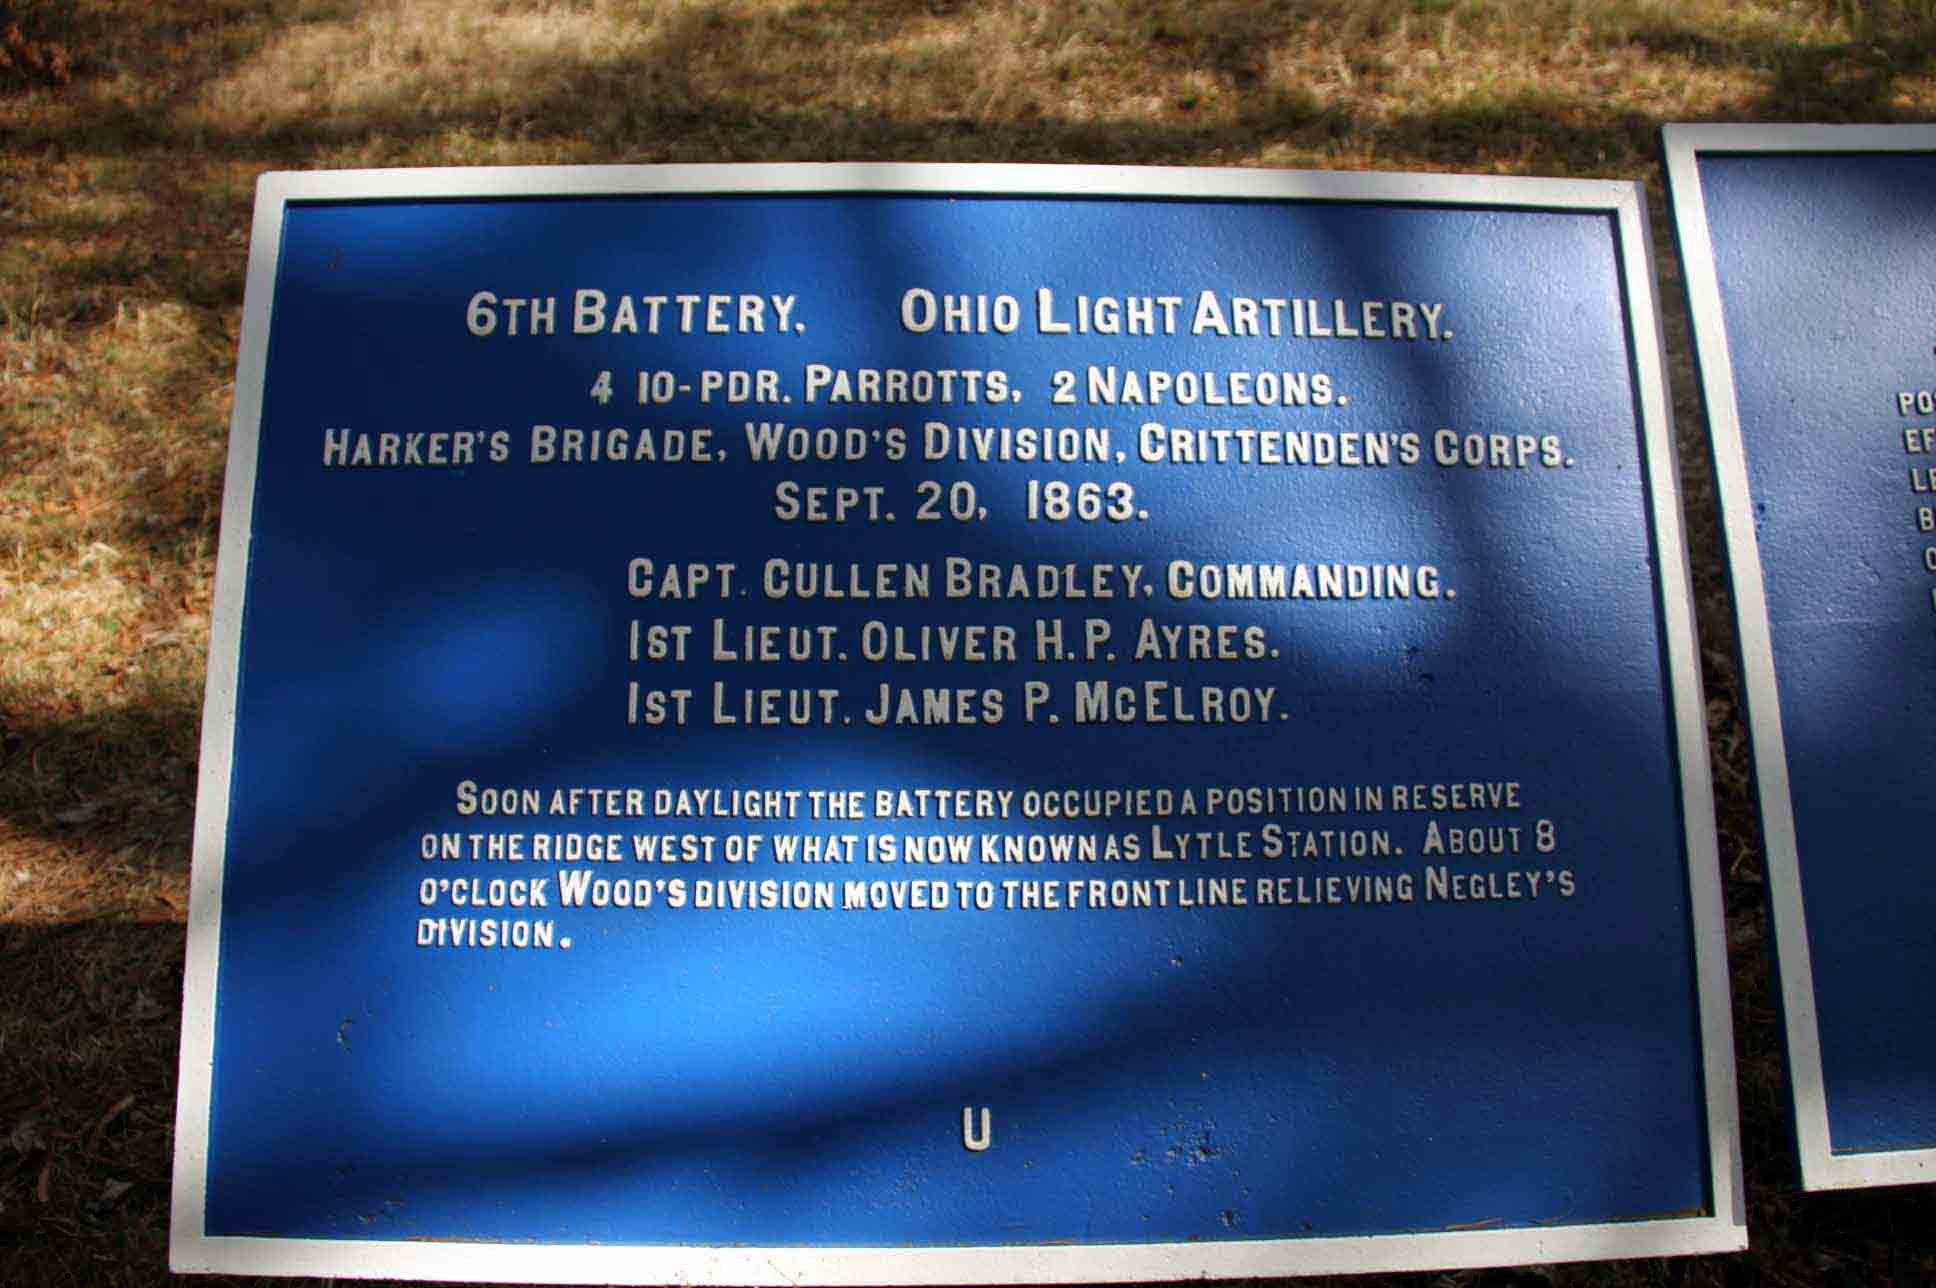 6th Battery Ohio Light Artillery Plaque, click photo to enlarge.